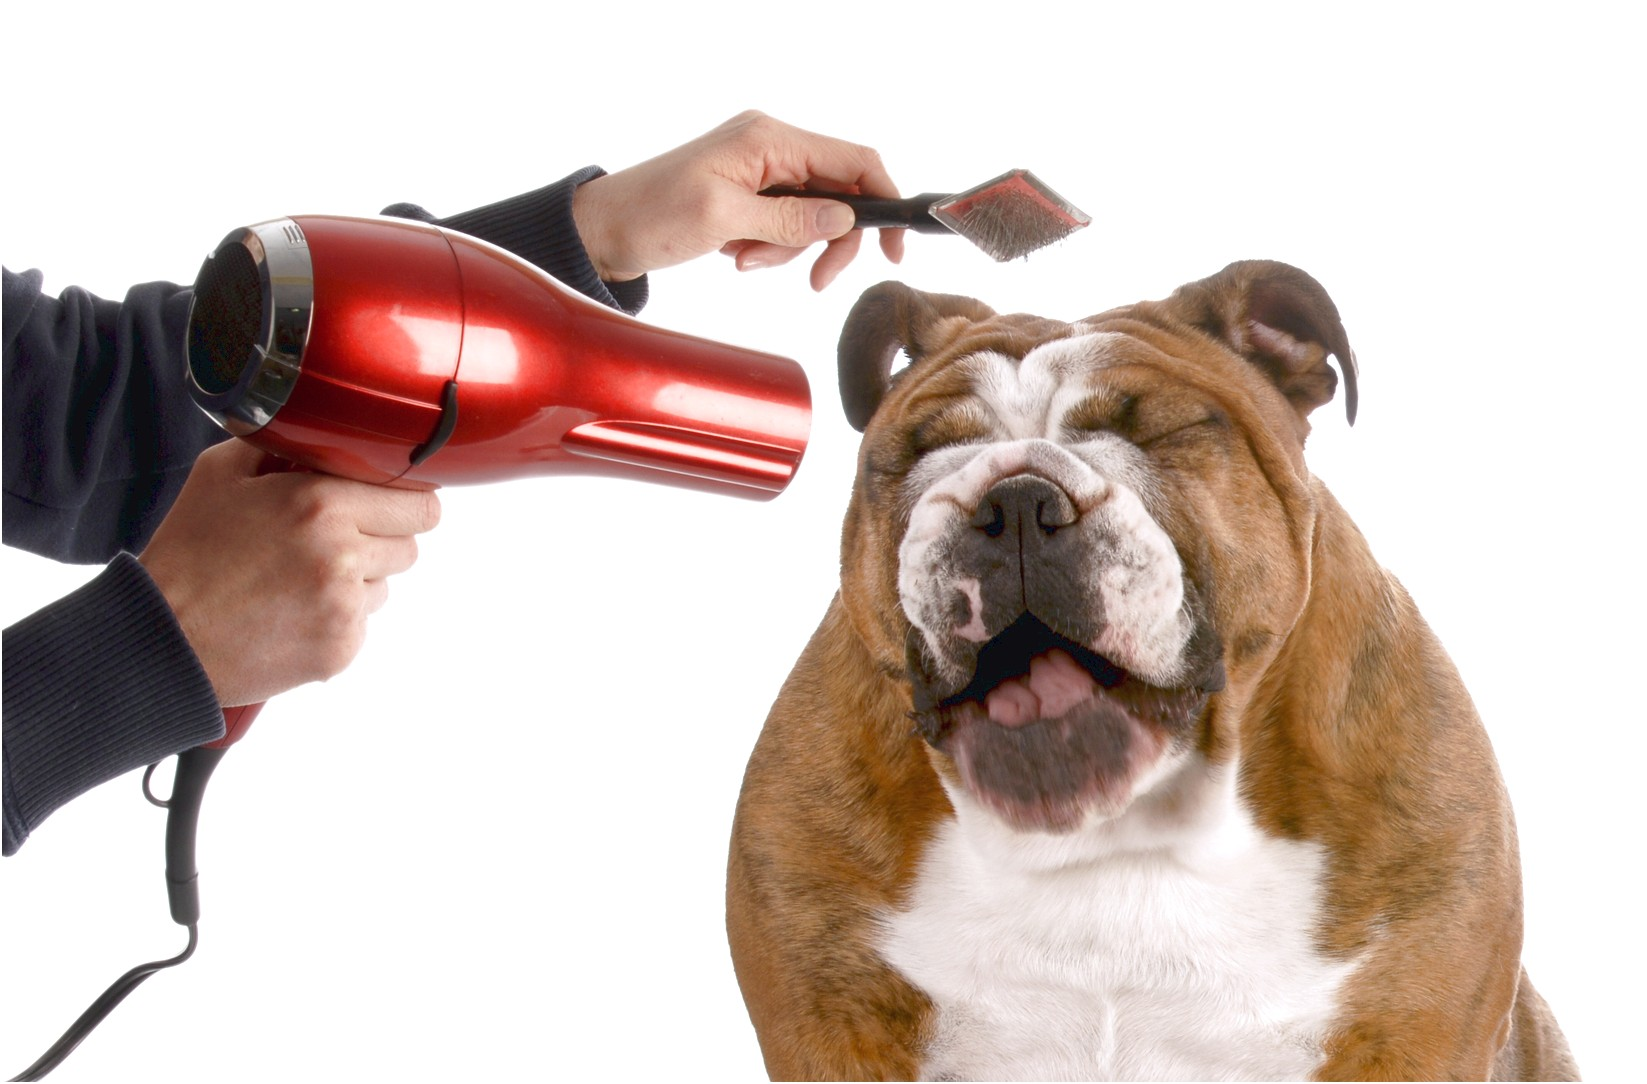 accredited dog grooming schools near me